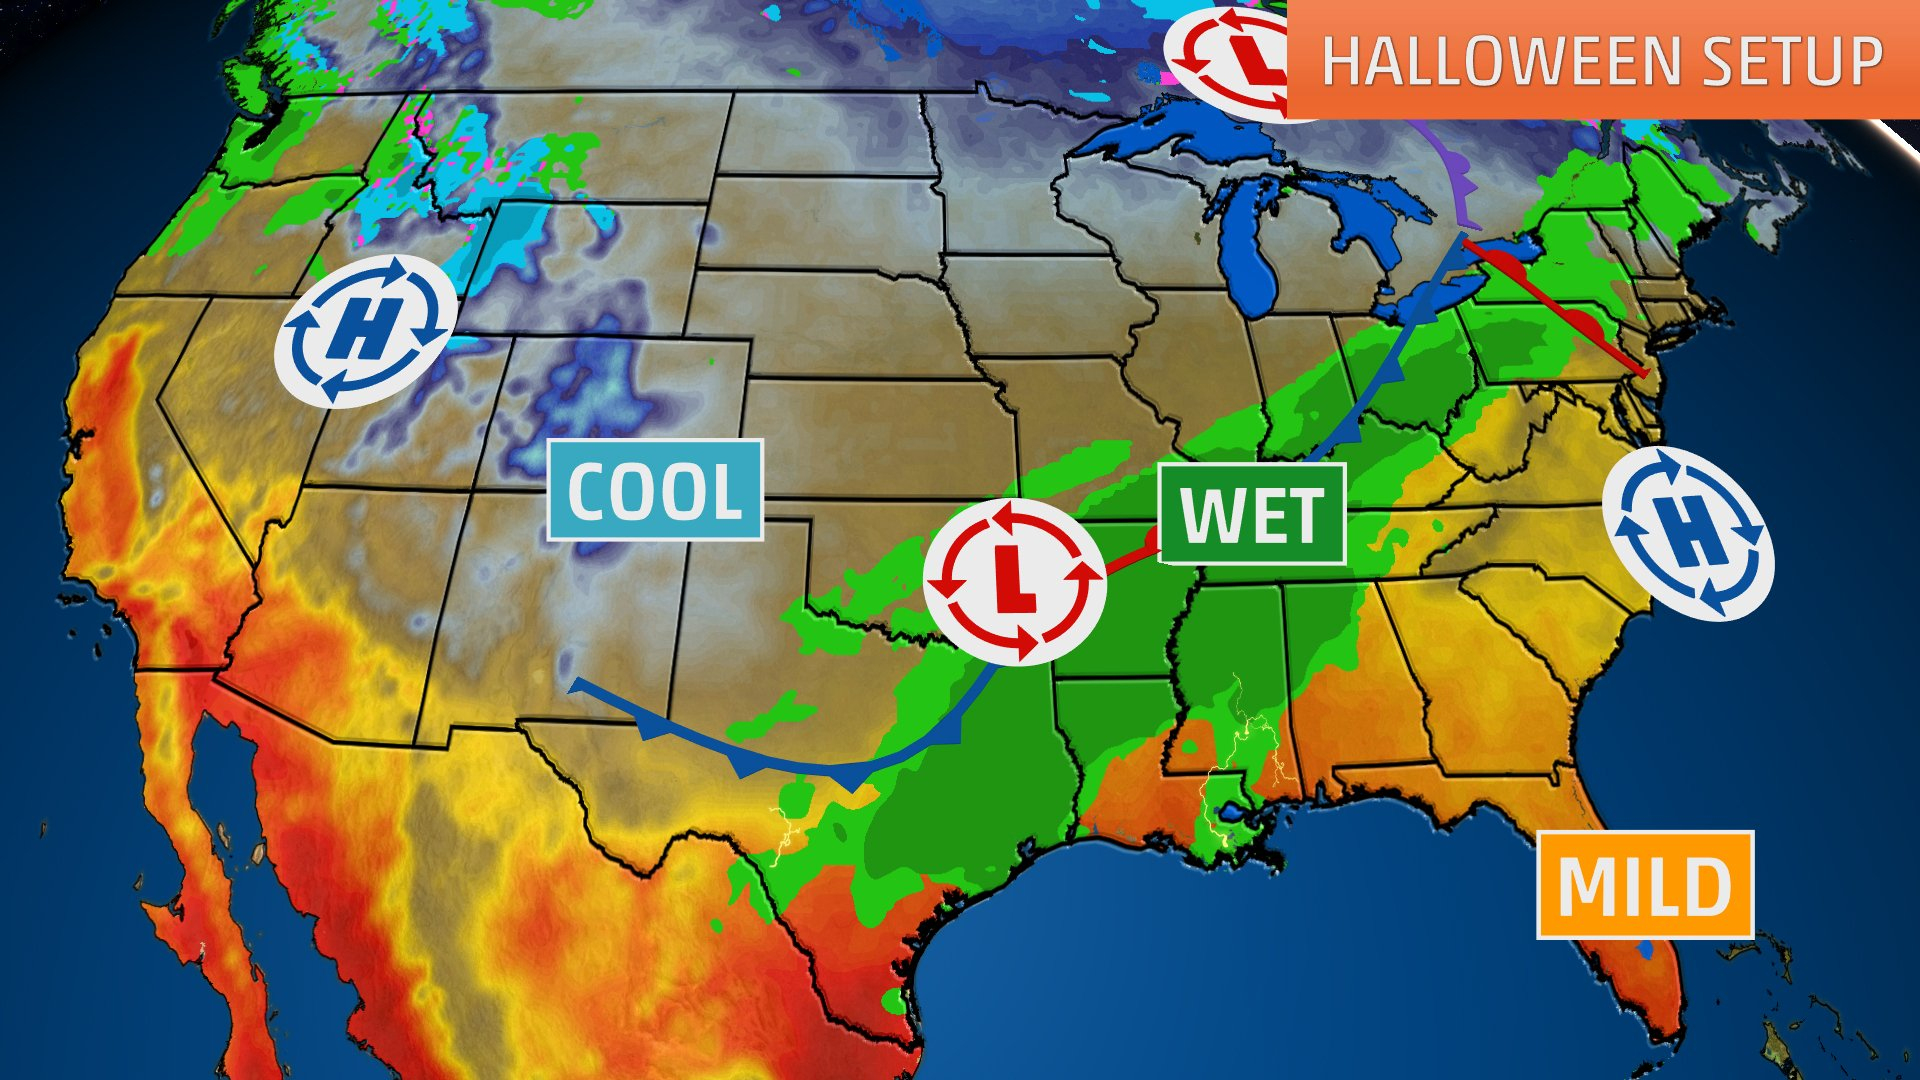 Halloween Weather Forecast: Wet Conditions From Texas To Ohio Valley - Texas Weather Map Today